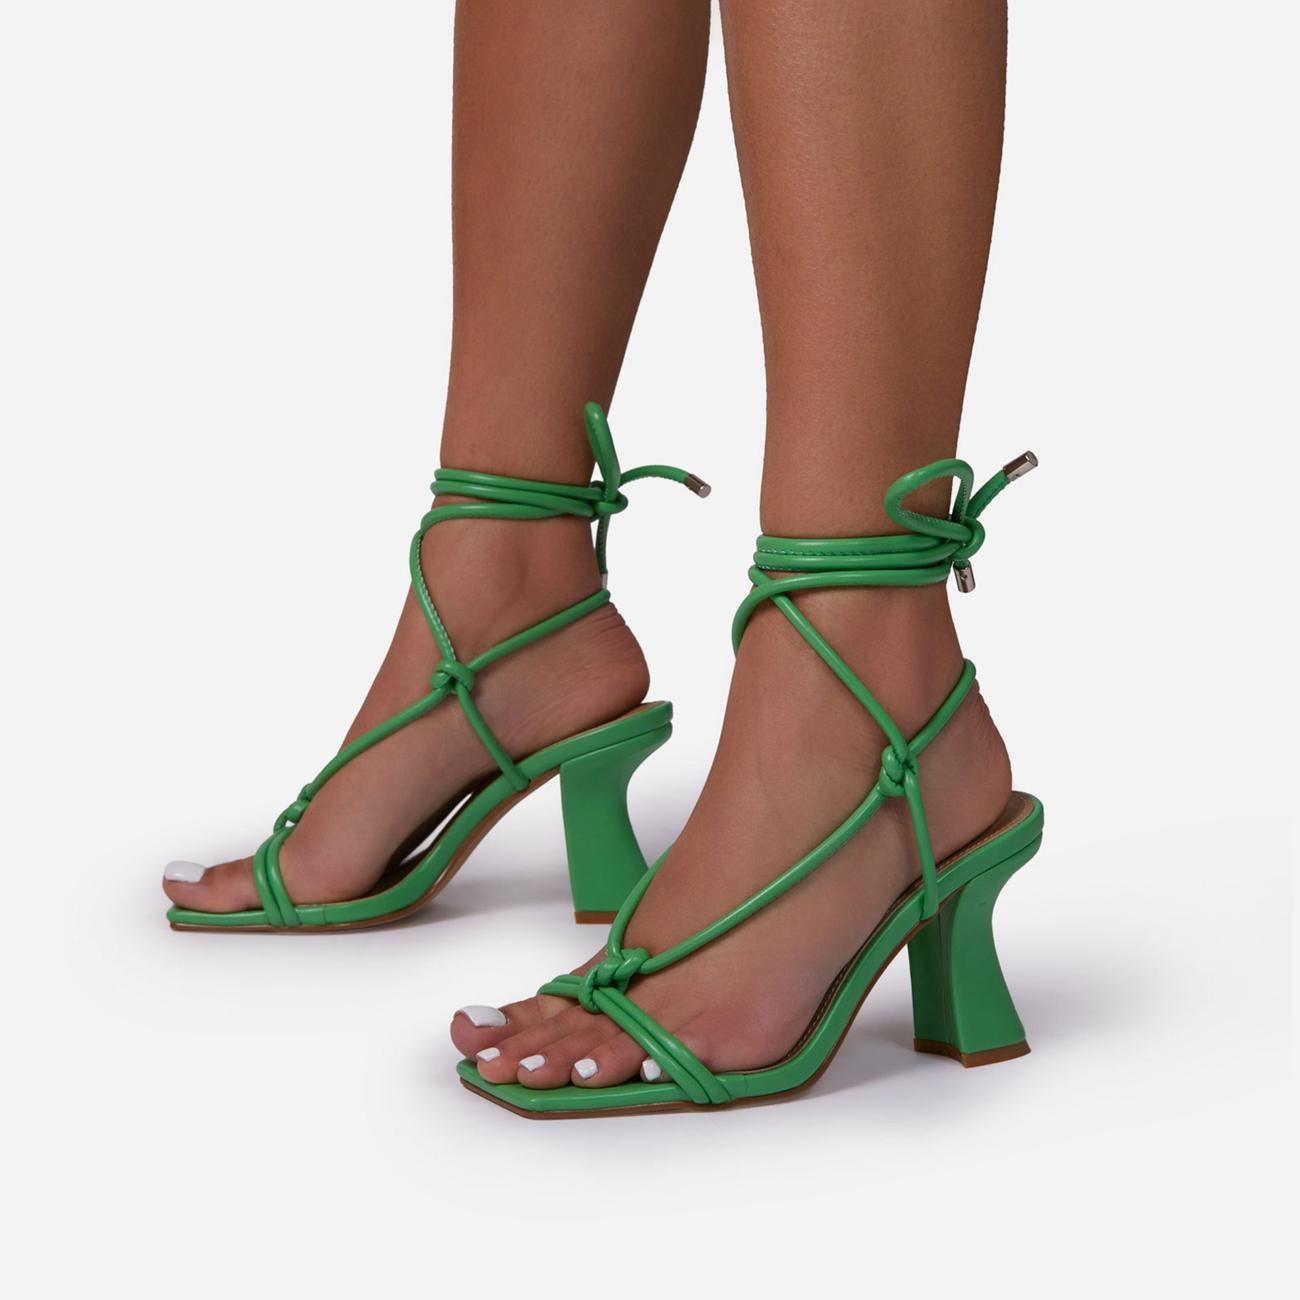 Harmony Knotted Detail Lace Up Square Toe Curved Low Block Heel In Green Faux Leather Image 2